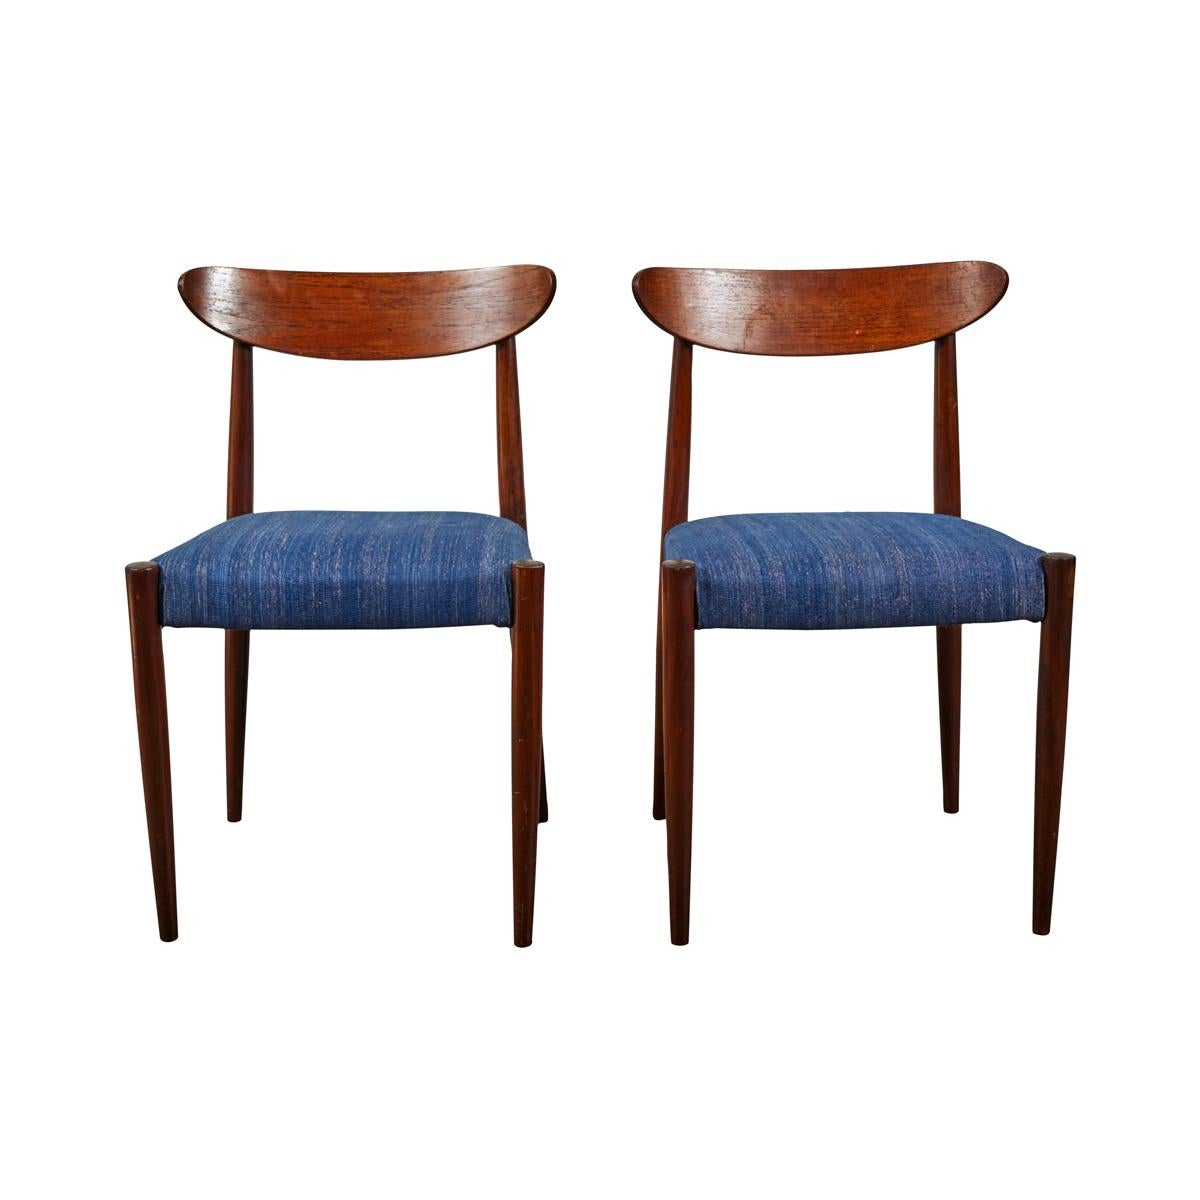 Pair of Mid Century Blue Upholstered Dining Chairs with Tapered Legs